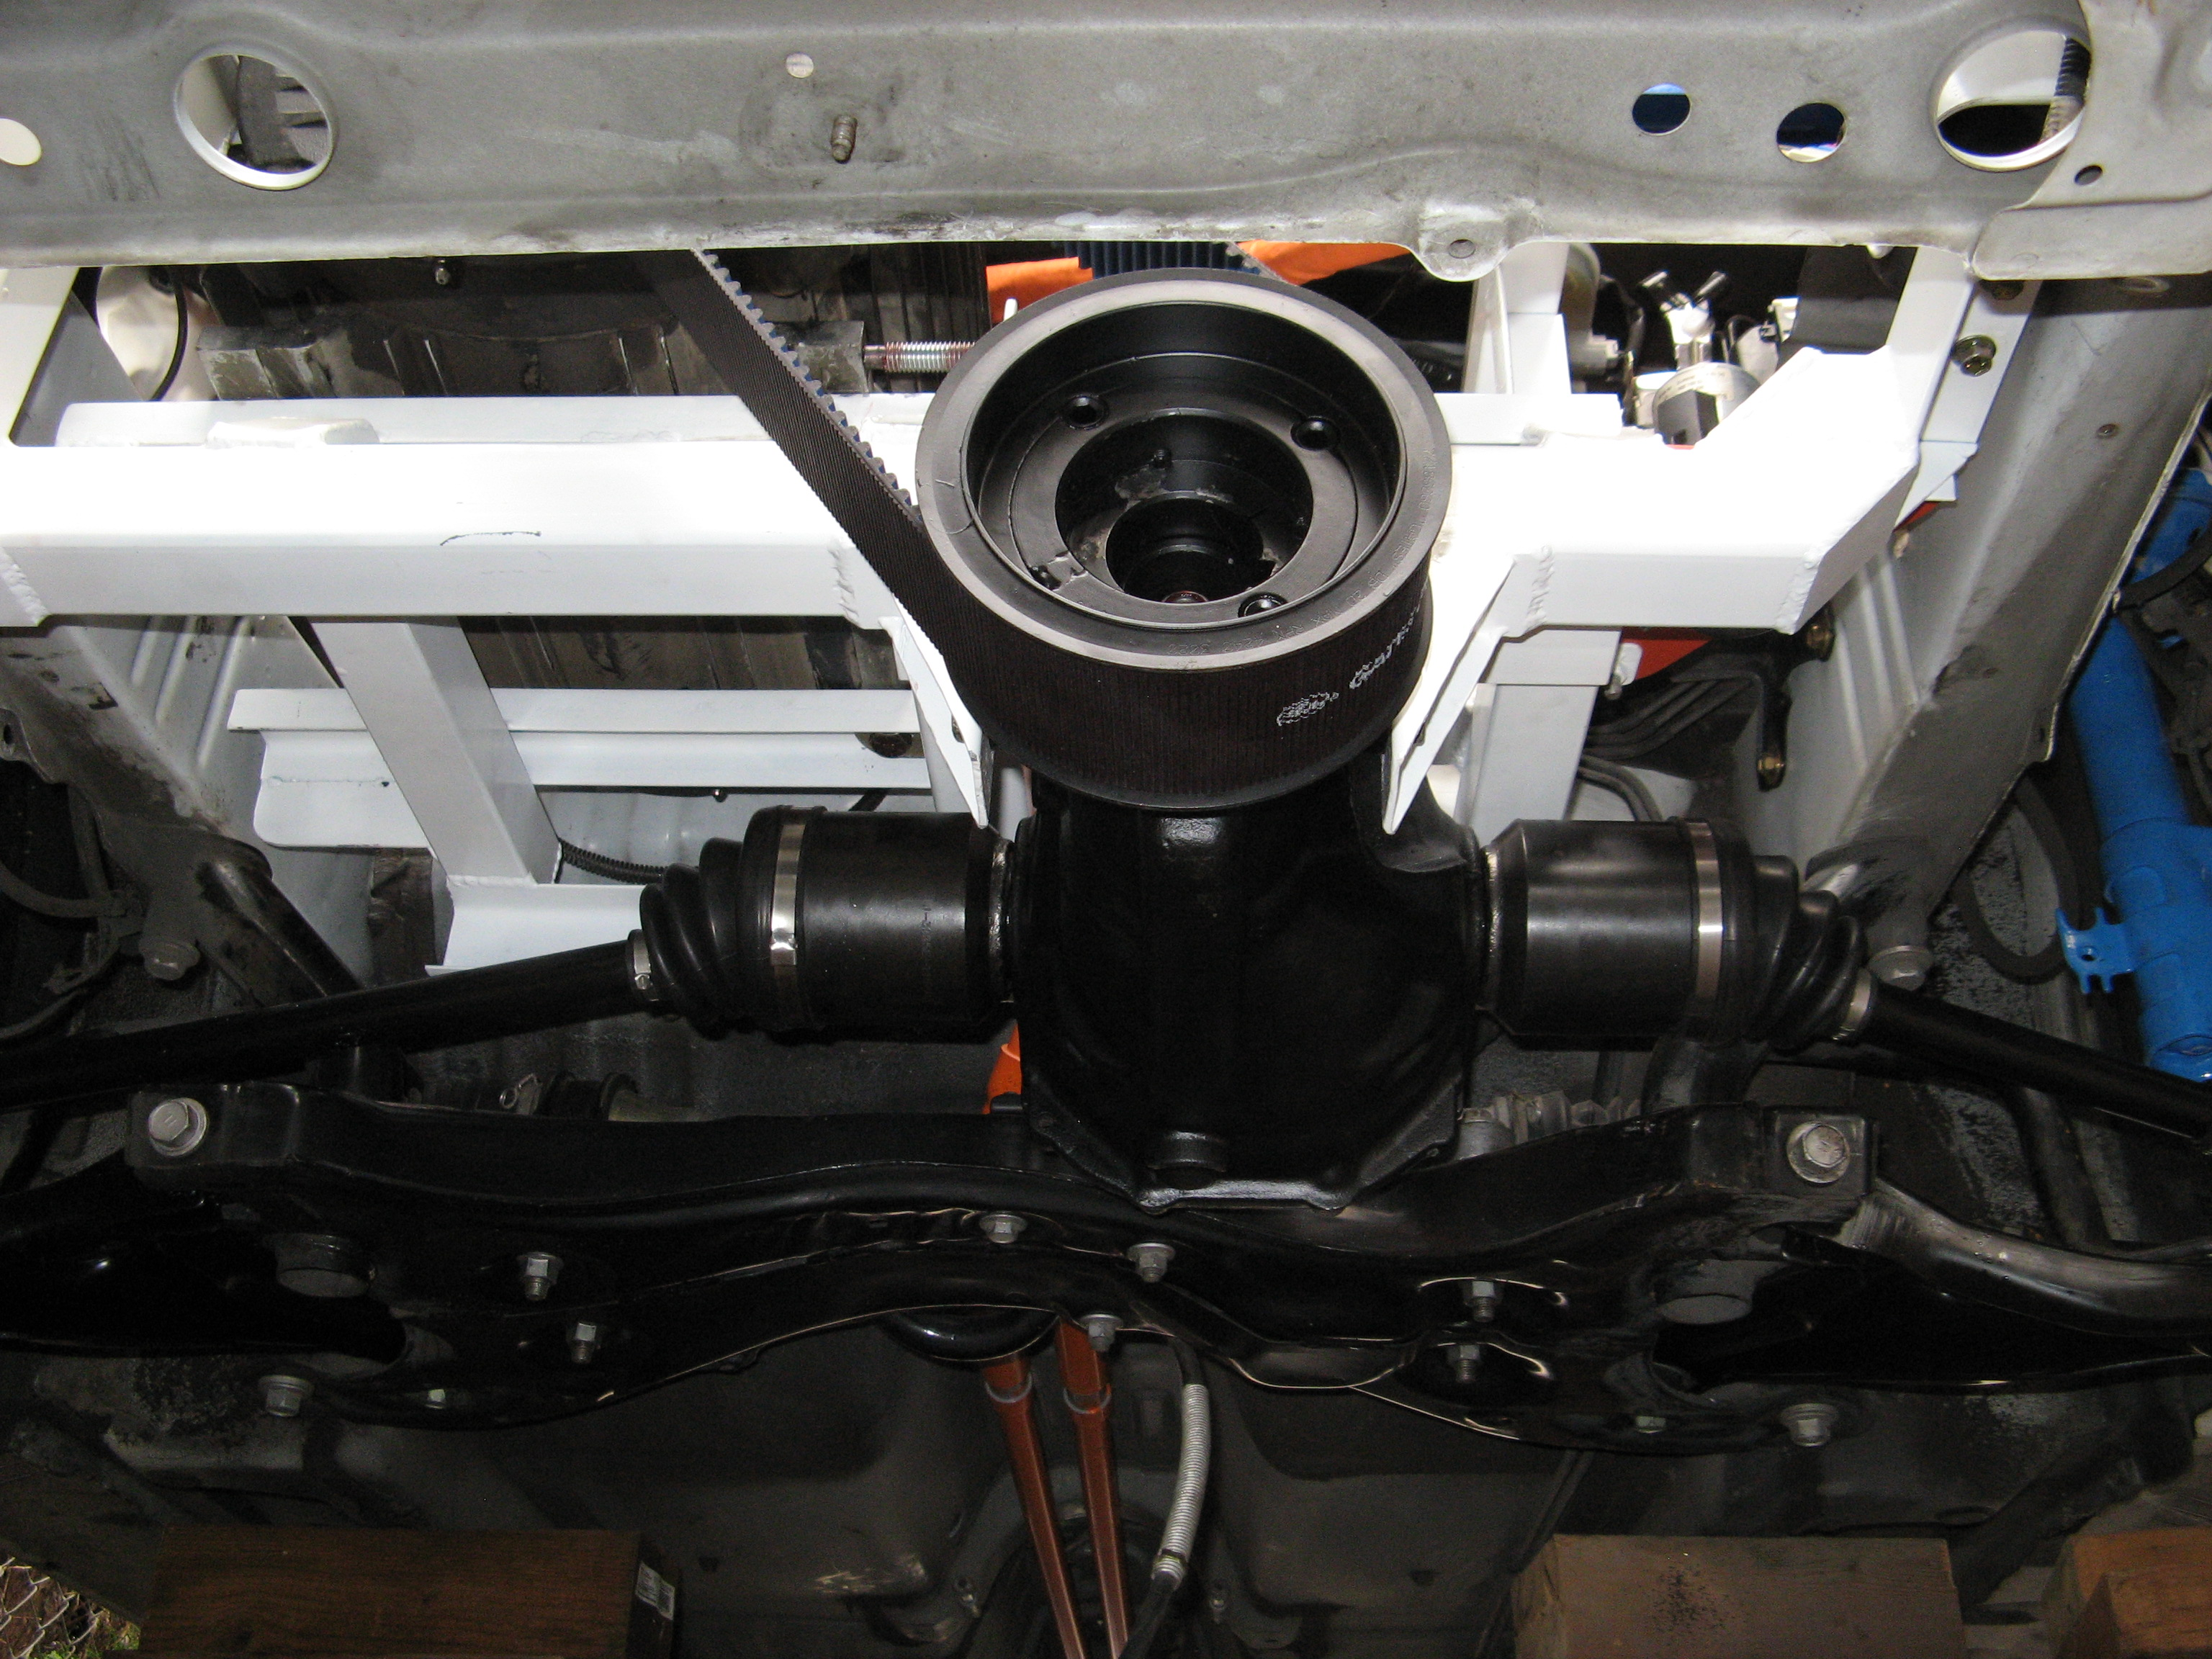 Underside Of Motor Compartment Showing 1985 Celica Gts Diffeial And Belt Drive